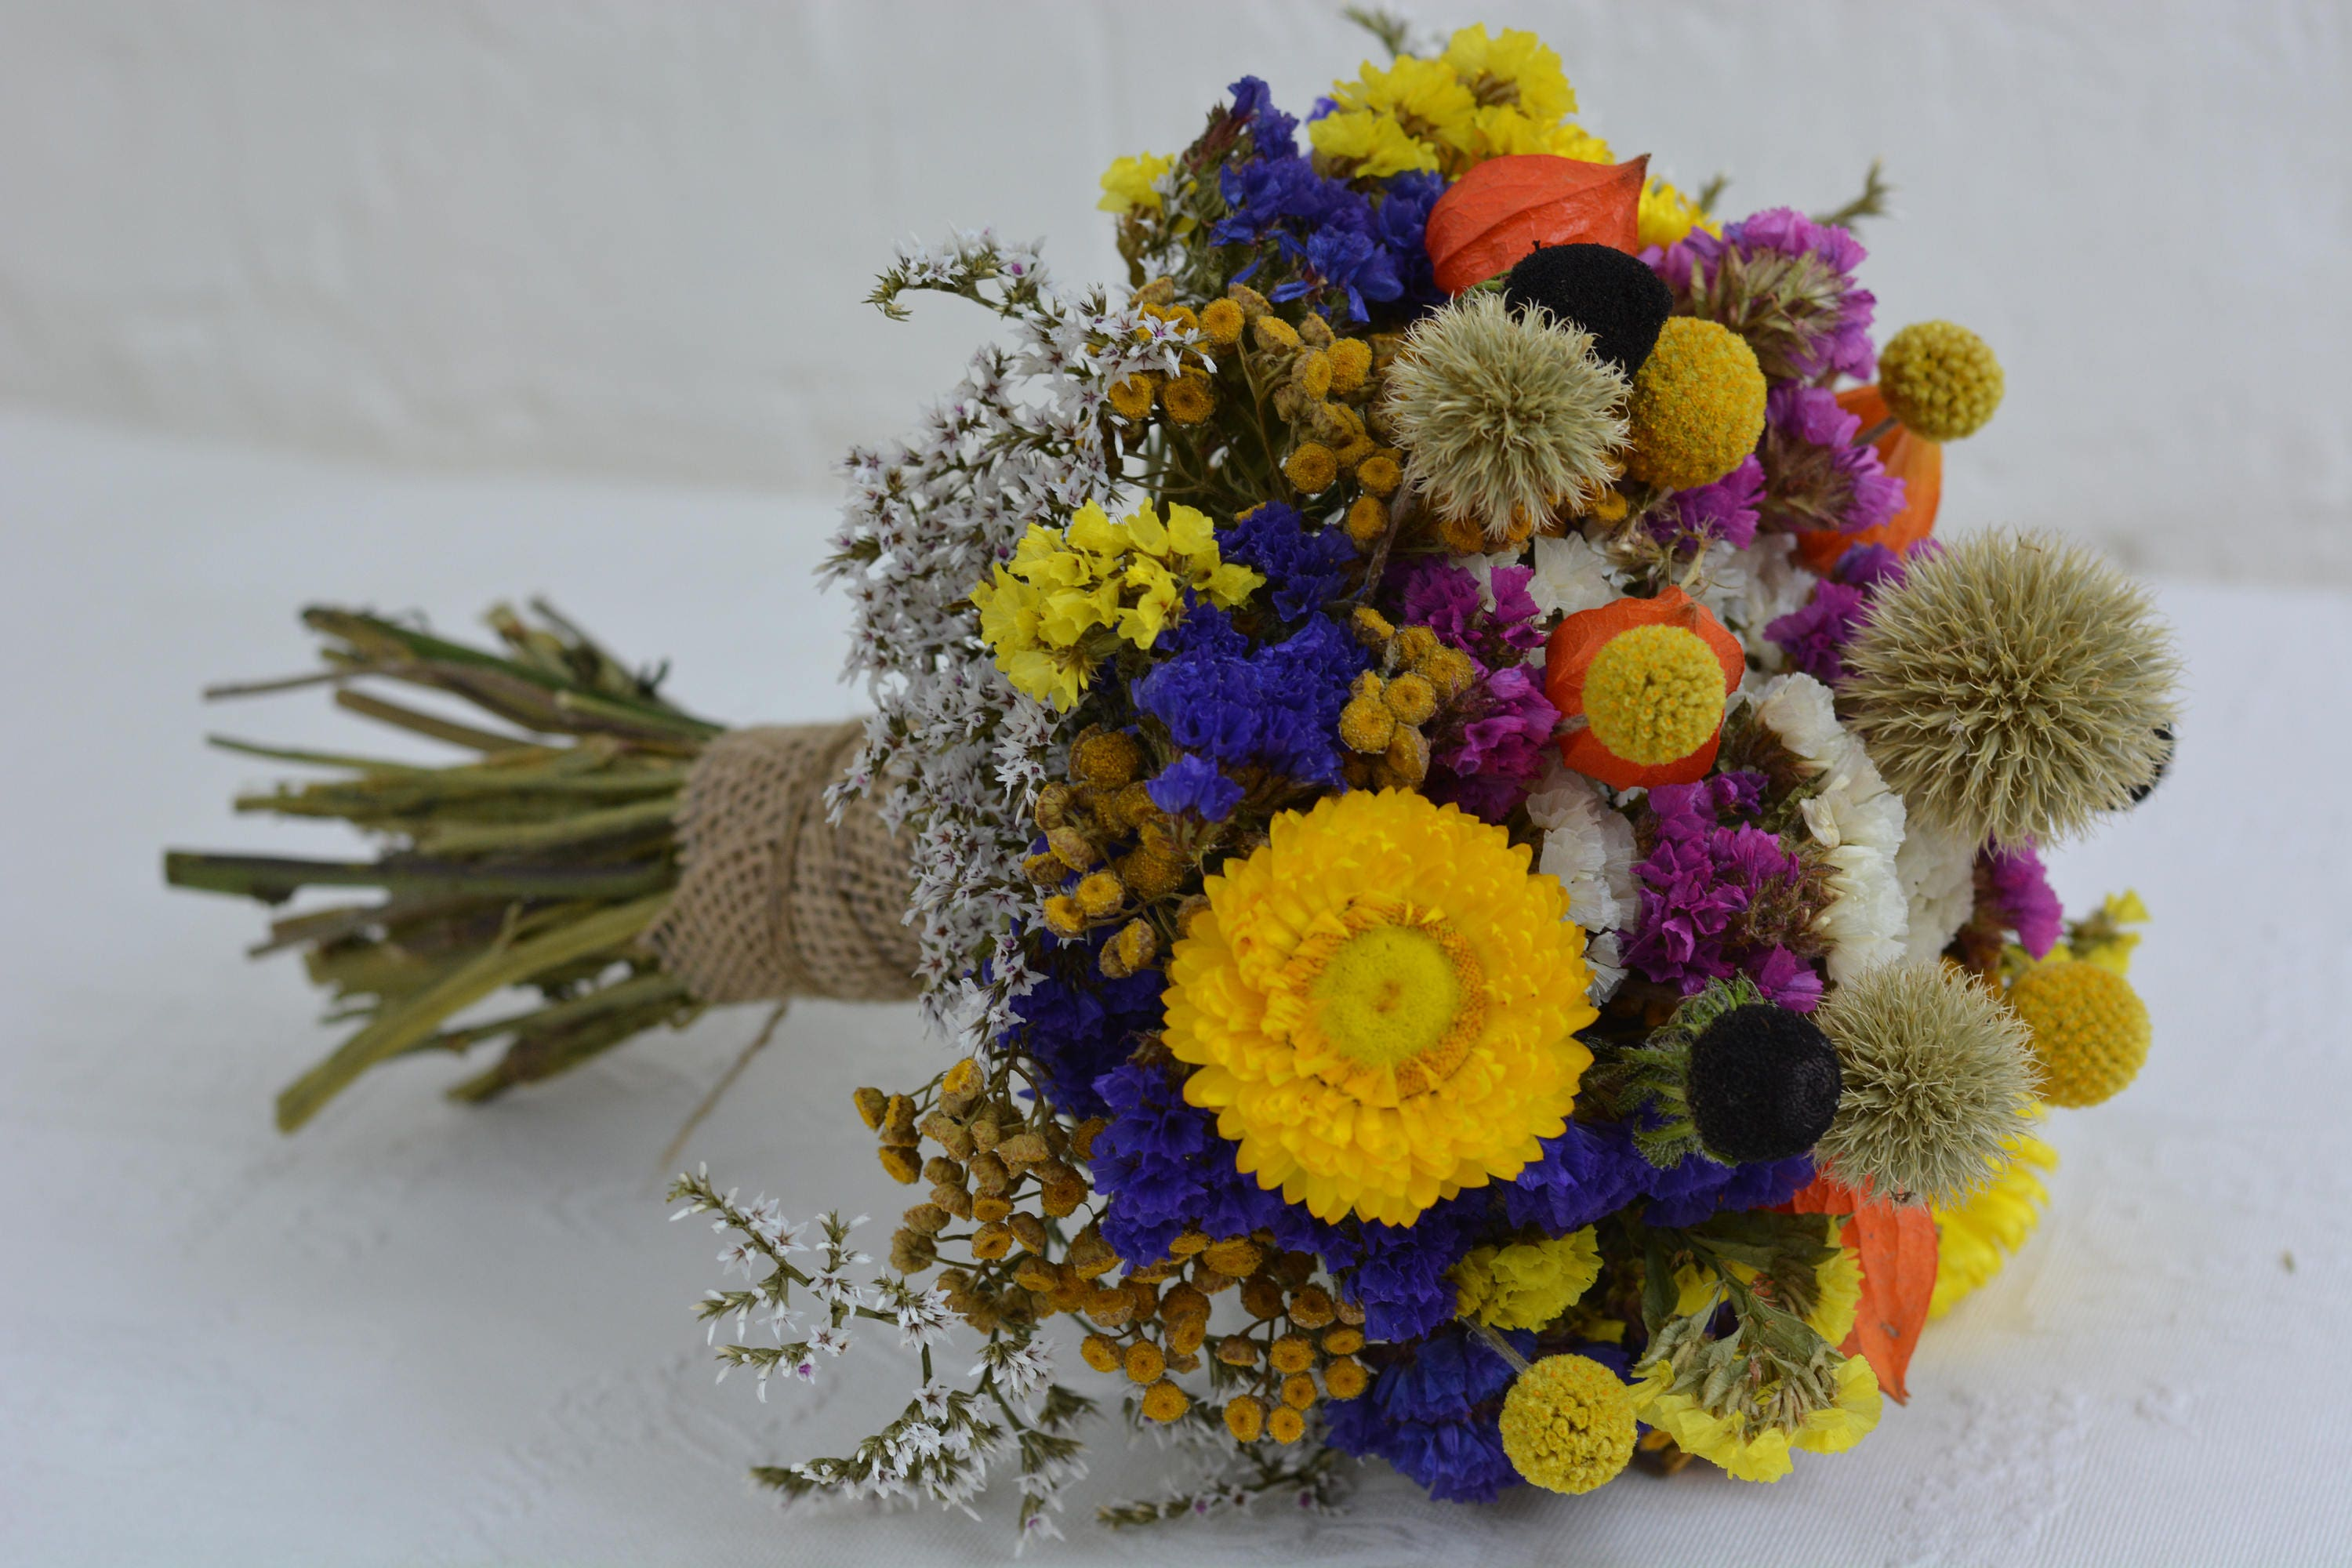 Dried flower bouquet dried flowers fall colors wedding flowers rustic flower bouquet natural flower decor rustic wedding decor sold by gardeniemagic izmirmasajfo